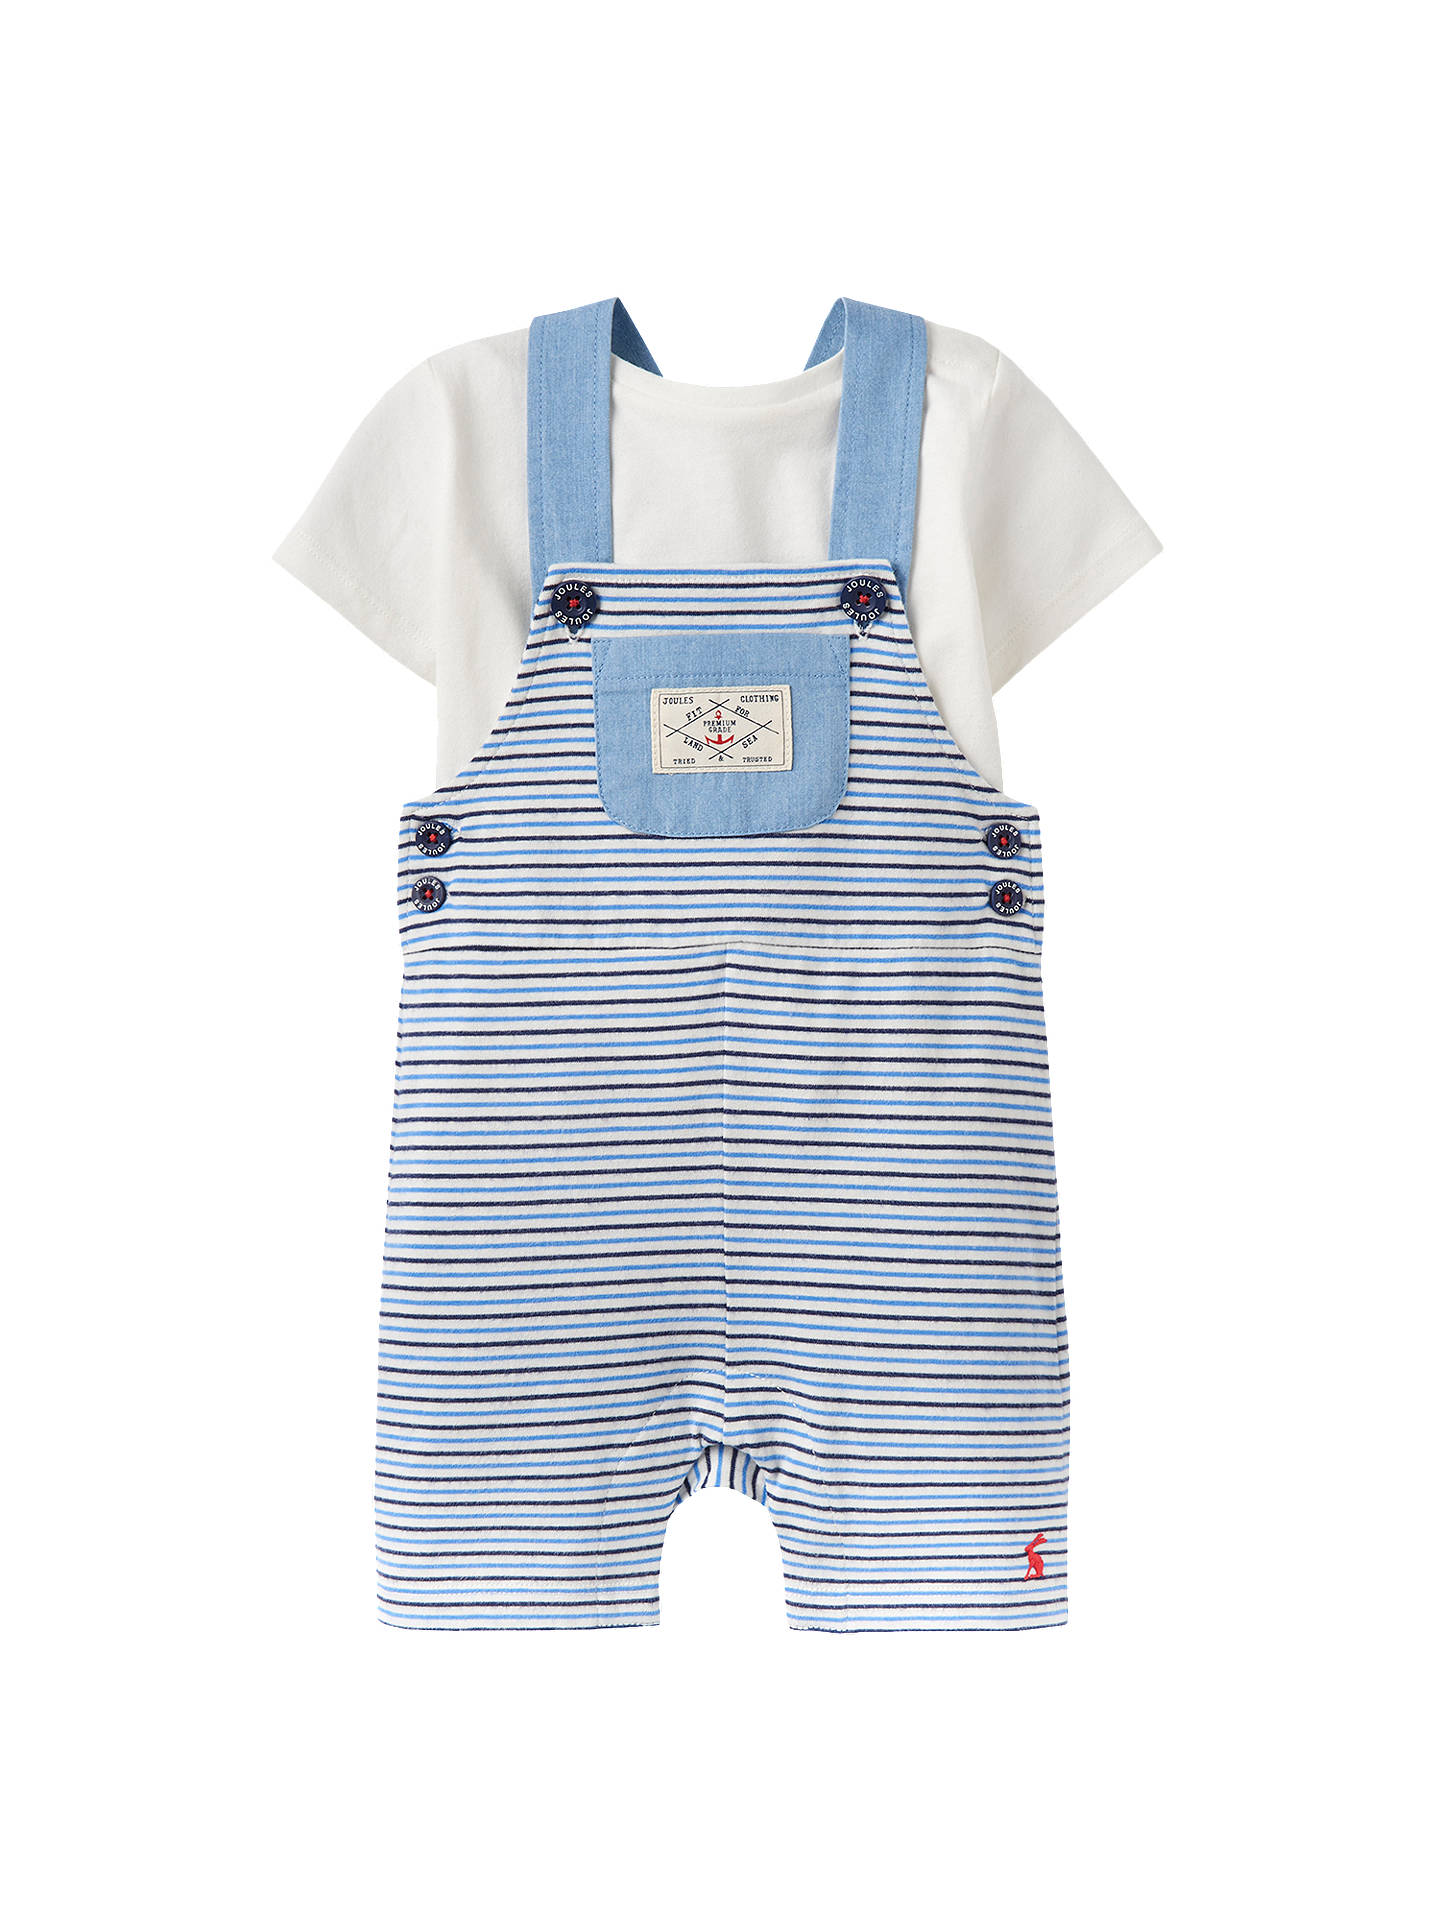 Ted Baker Baby Boy Shorts Dungarees Set 0-3 Months Modern Design Boys' Clothing (0-24 Months)